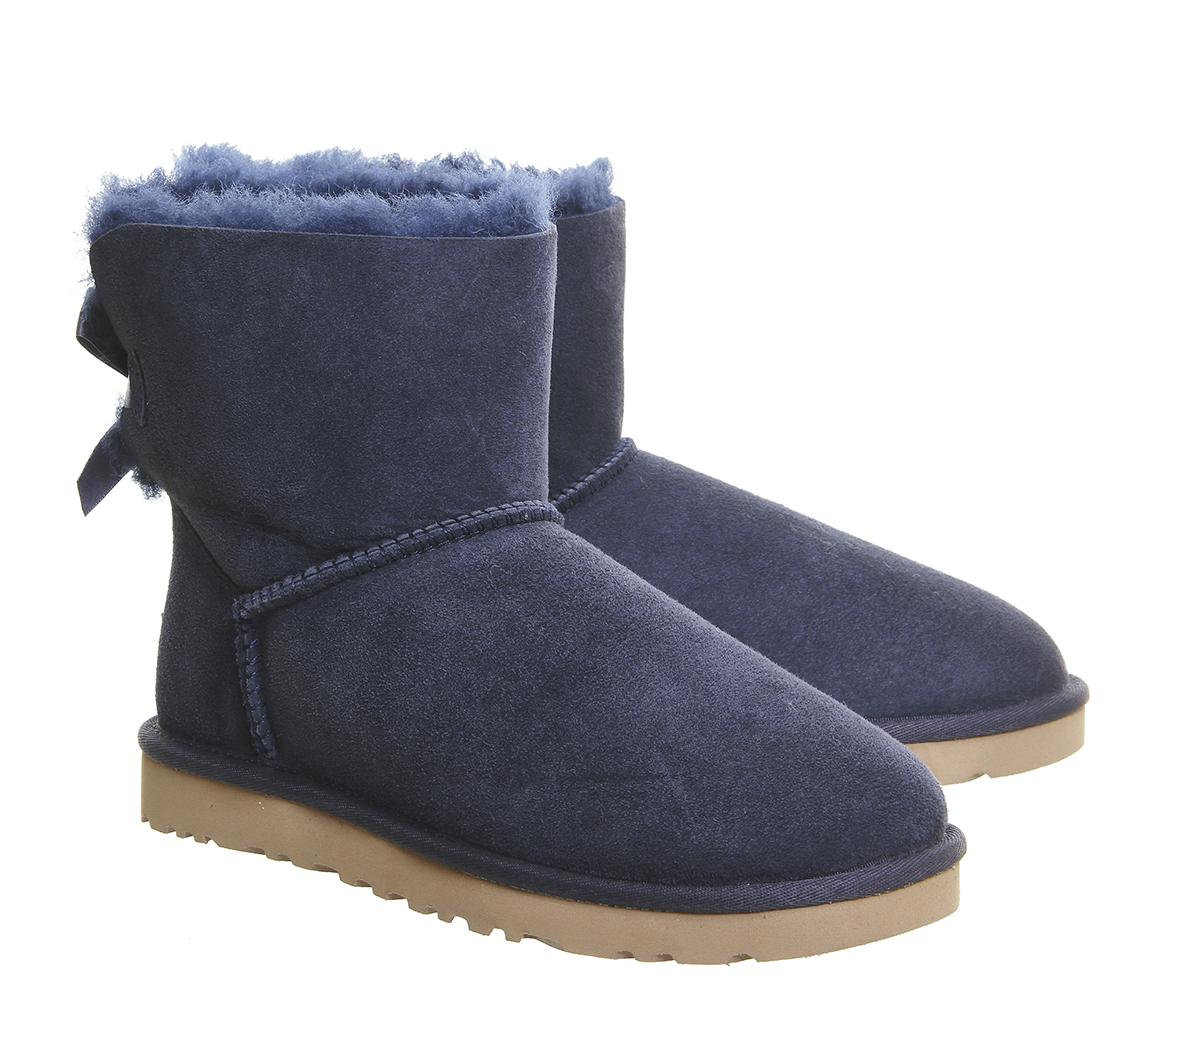 cdfb7315079 Navy Ugg Boots Size 6 - cheap watches mgc-gas.com